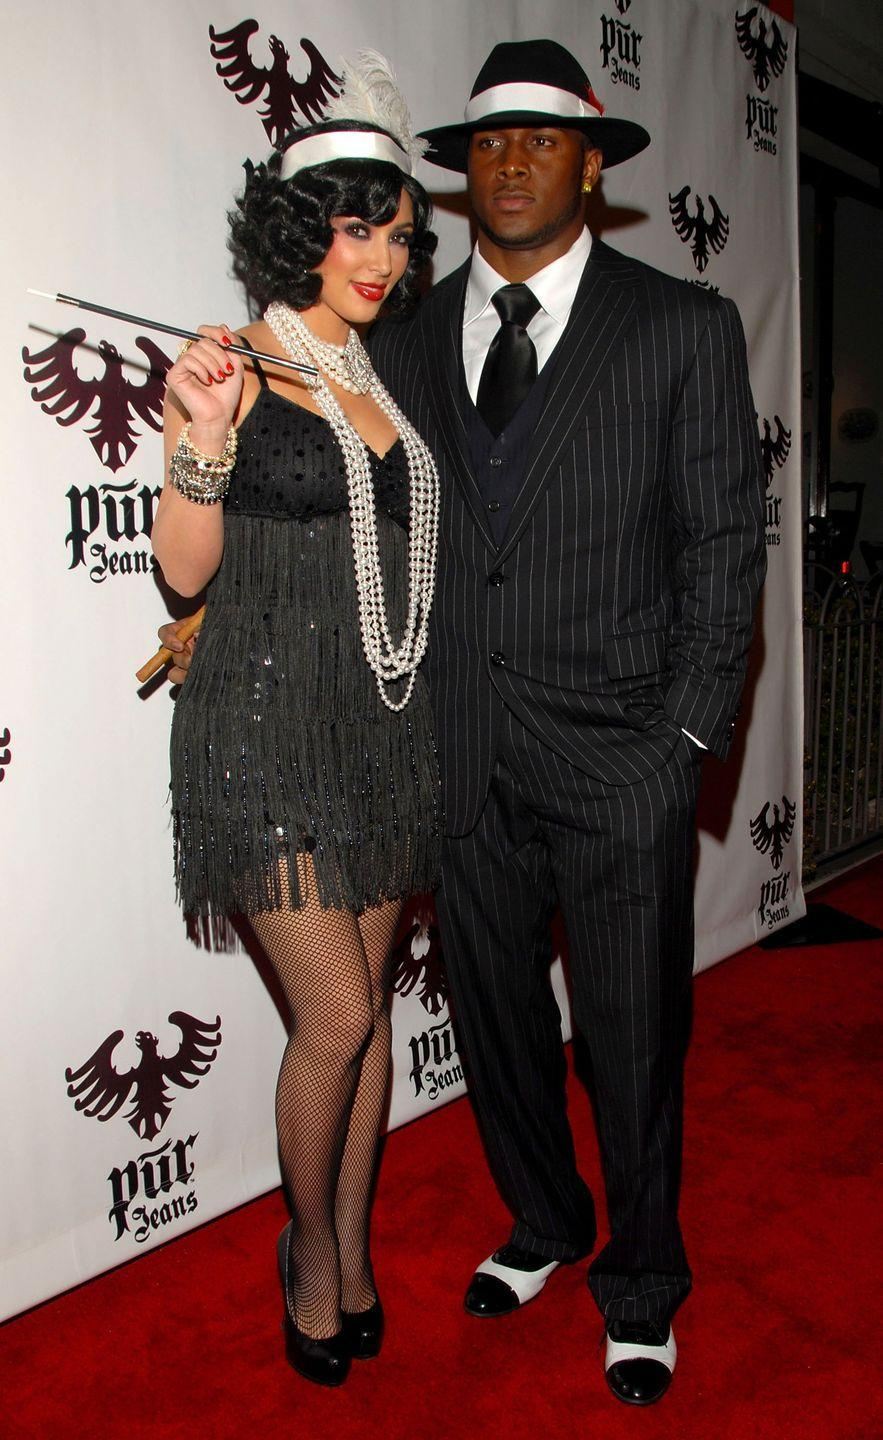 <p>Throwback—times two! Kim K. donned the 1920s flatter getup in 2008, back when she was still with former football player Reggie Bush (who dressed up as a matching mobster).</p>